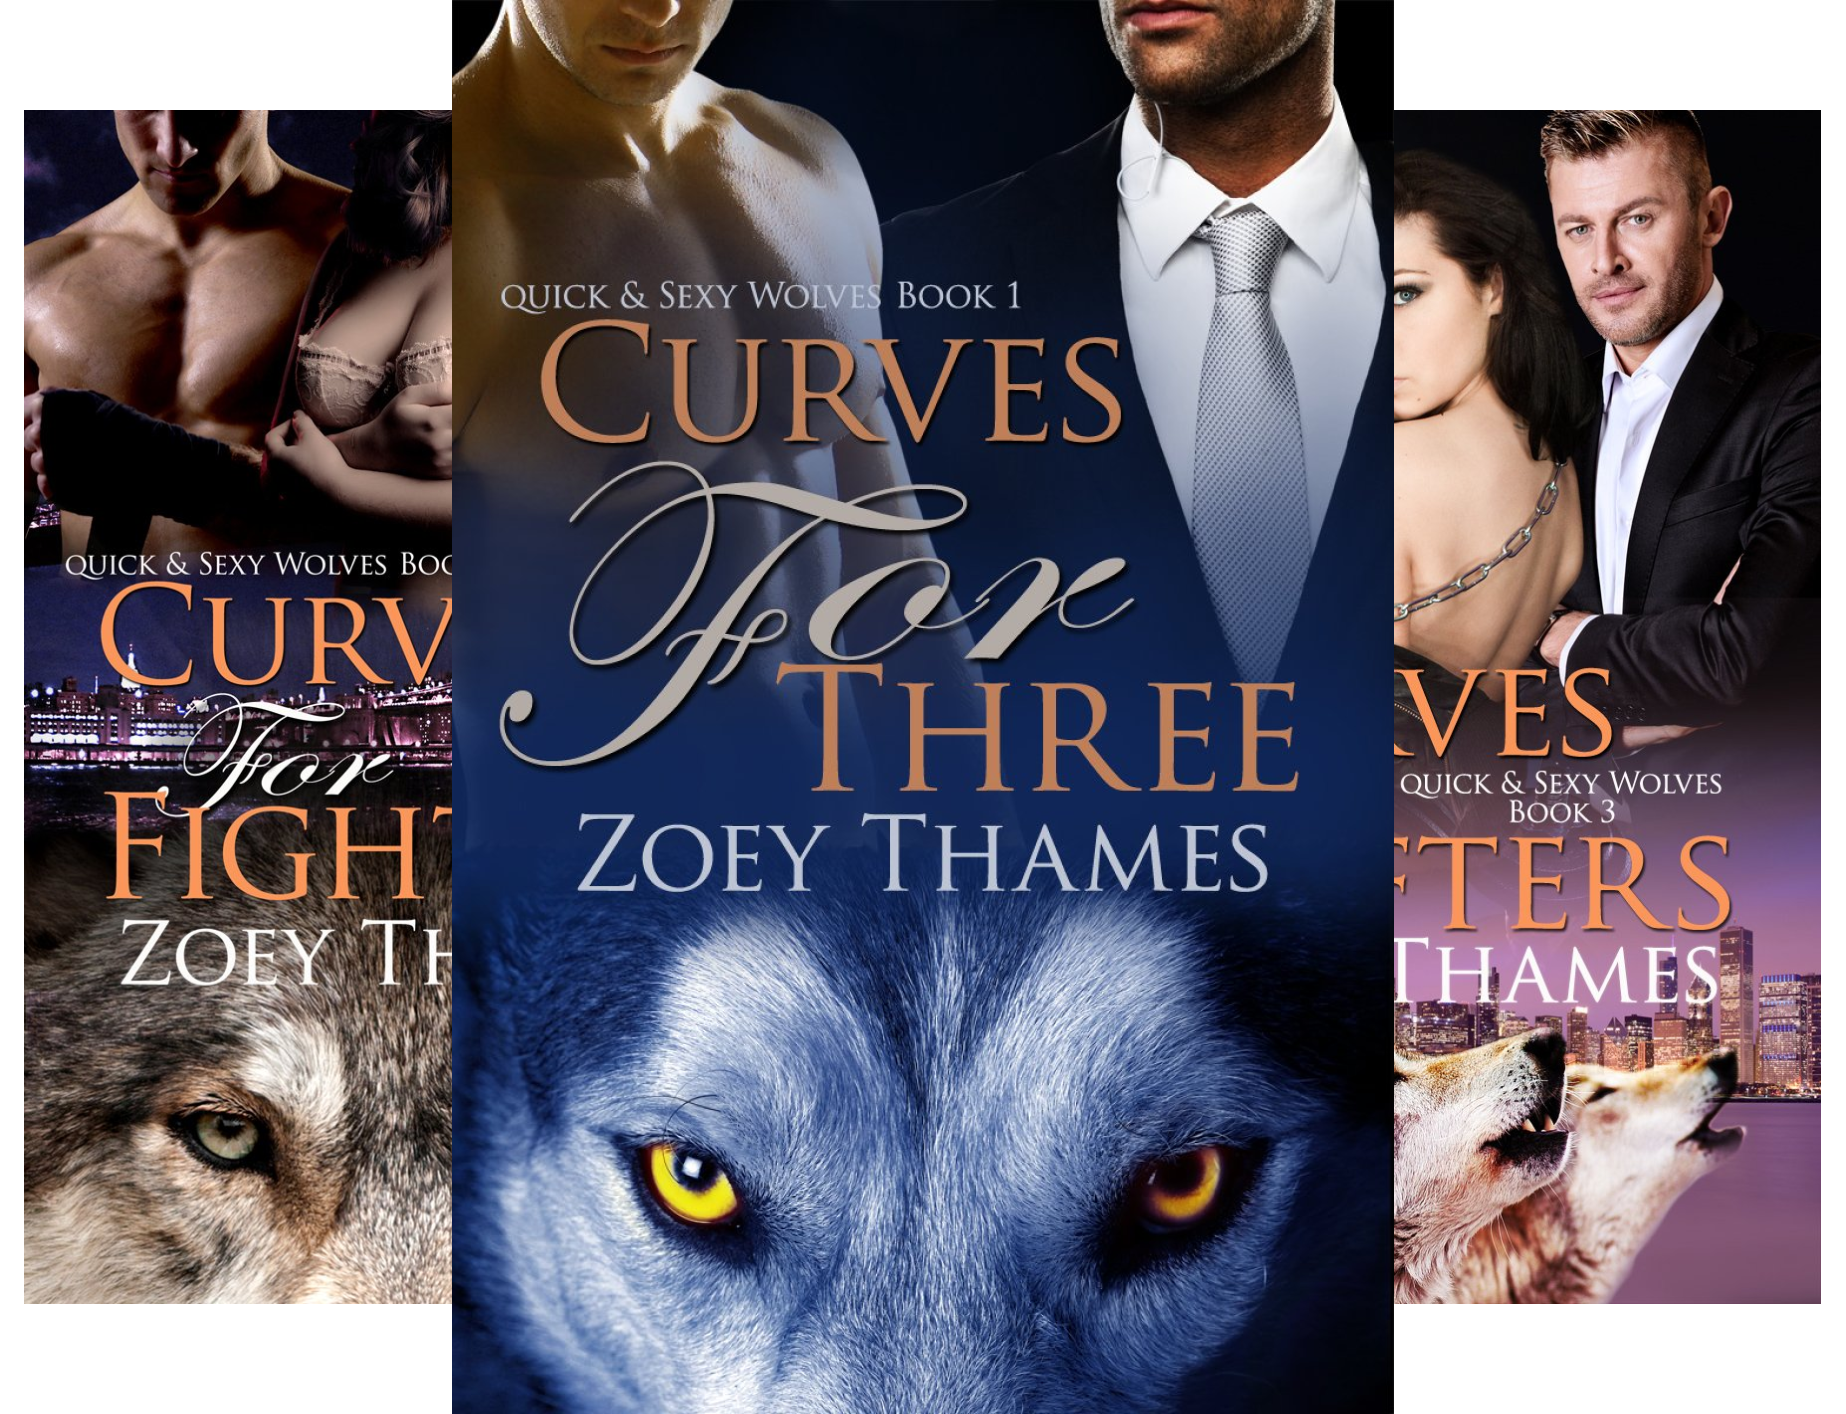 Quick & Sexy Wolves (4 Book Series)